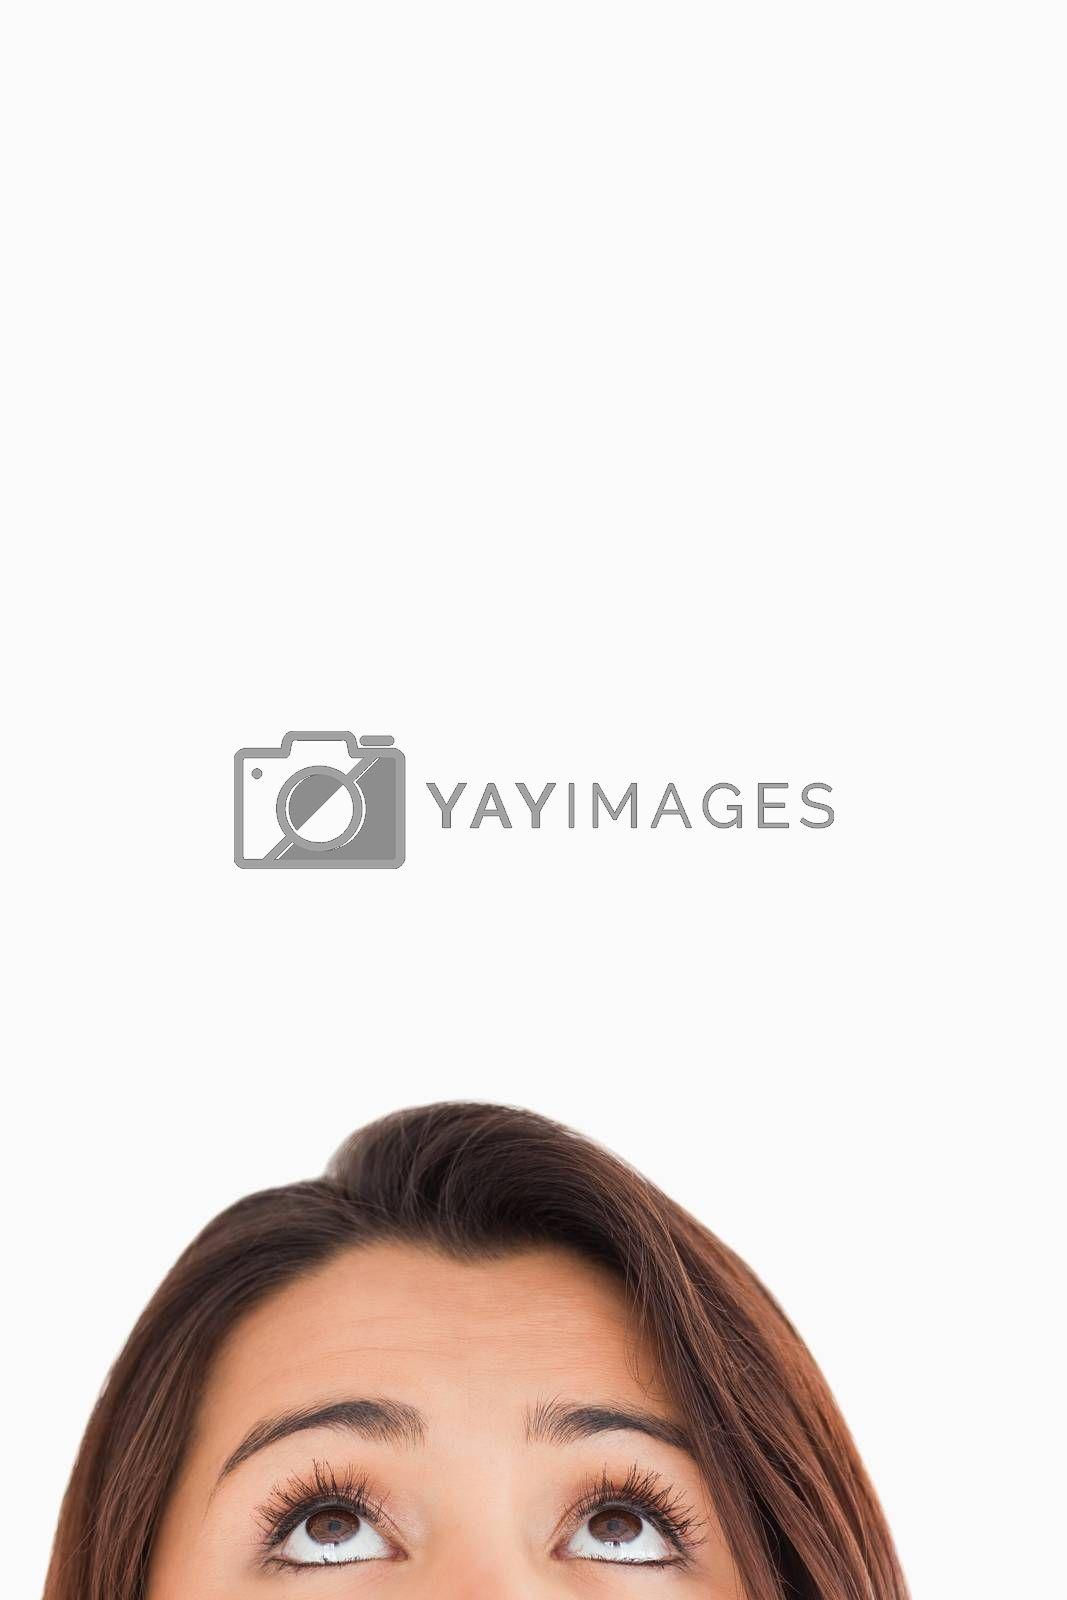 Woman eyes looking up while standing against a white background